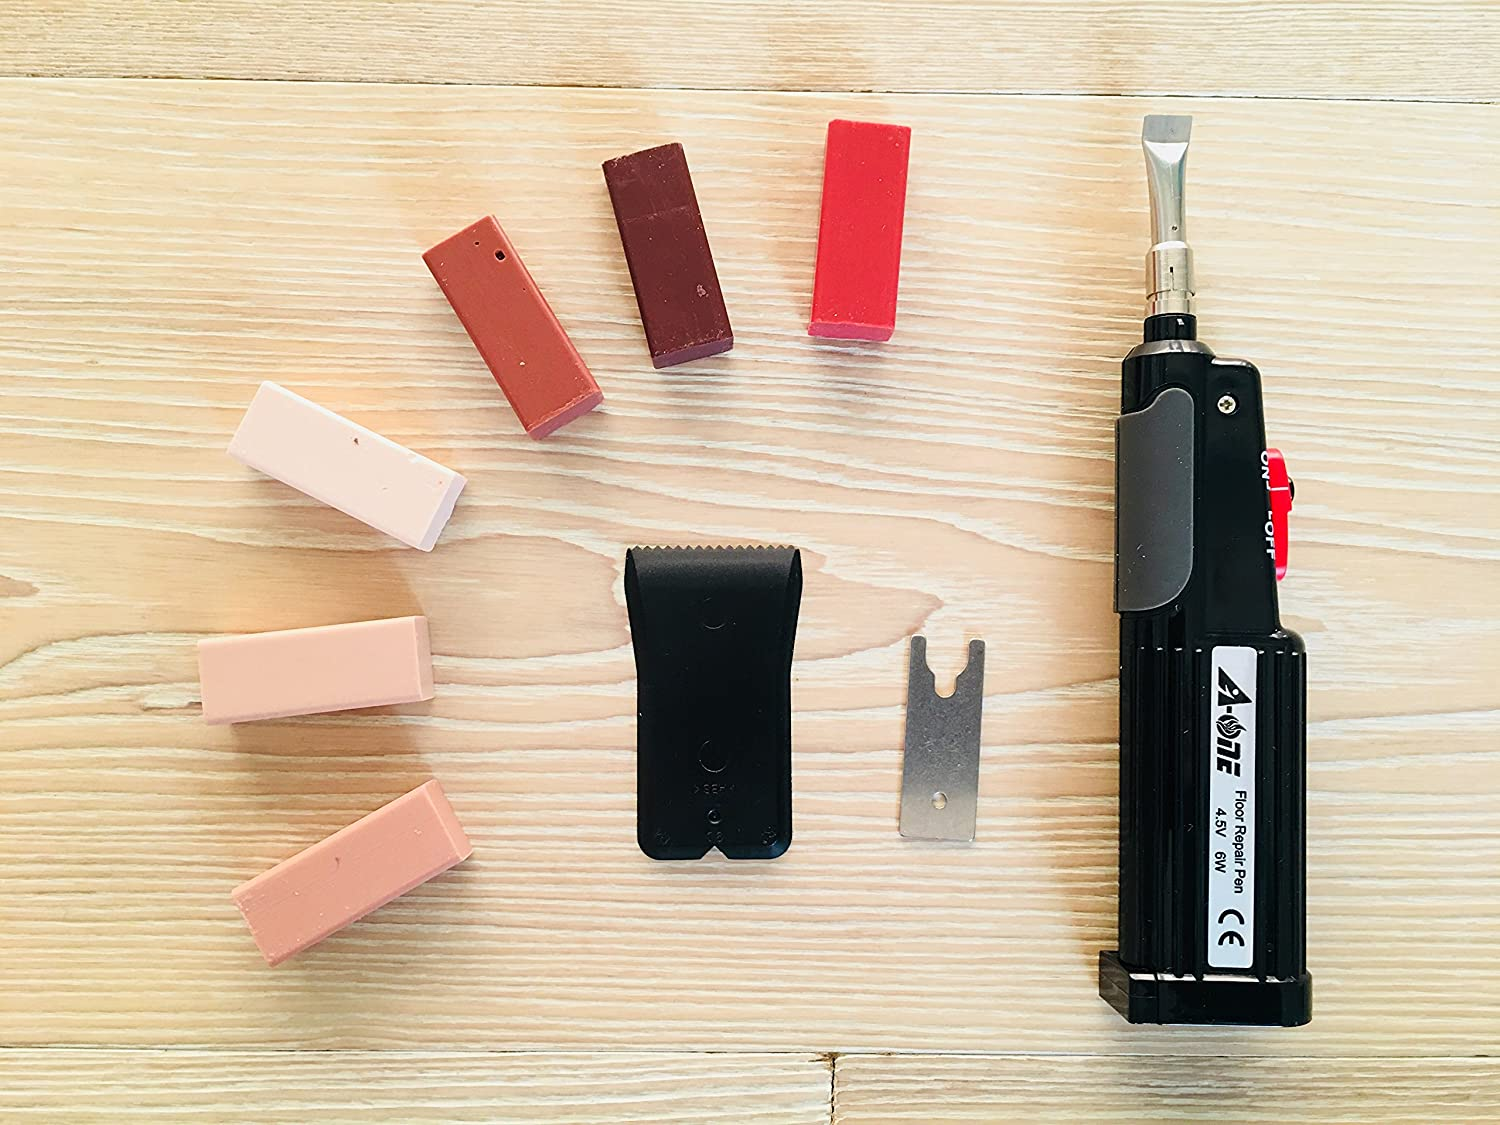 A One Wood And Laminate Repair Kit For Wood Furniture